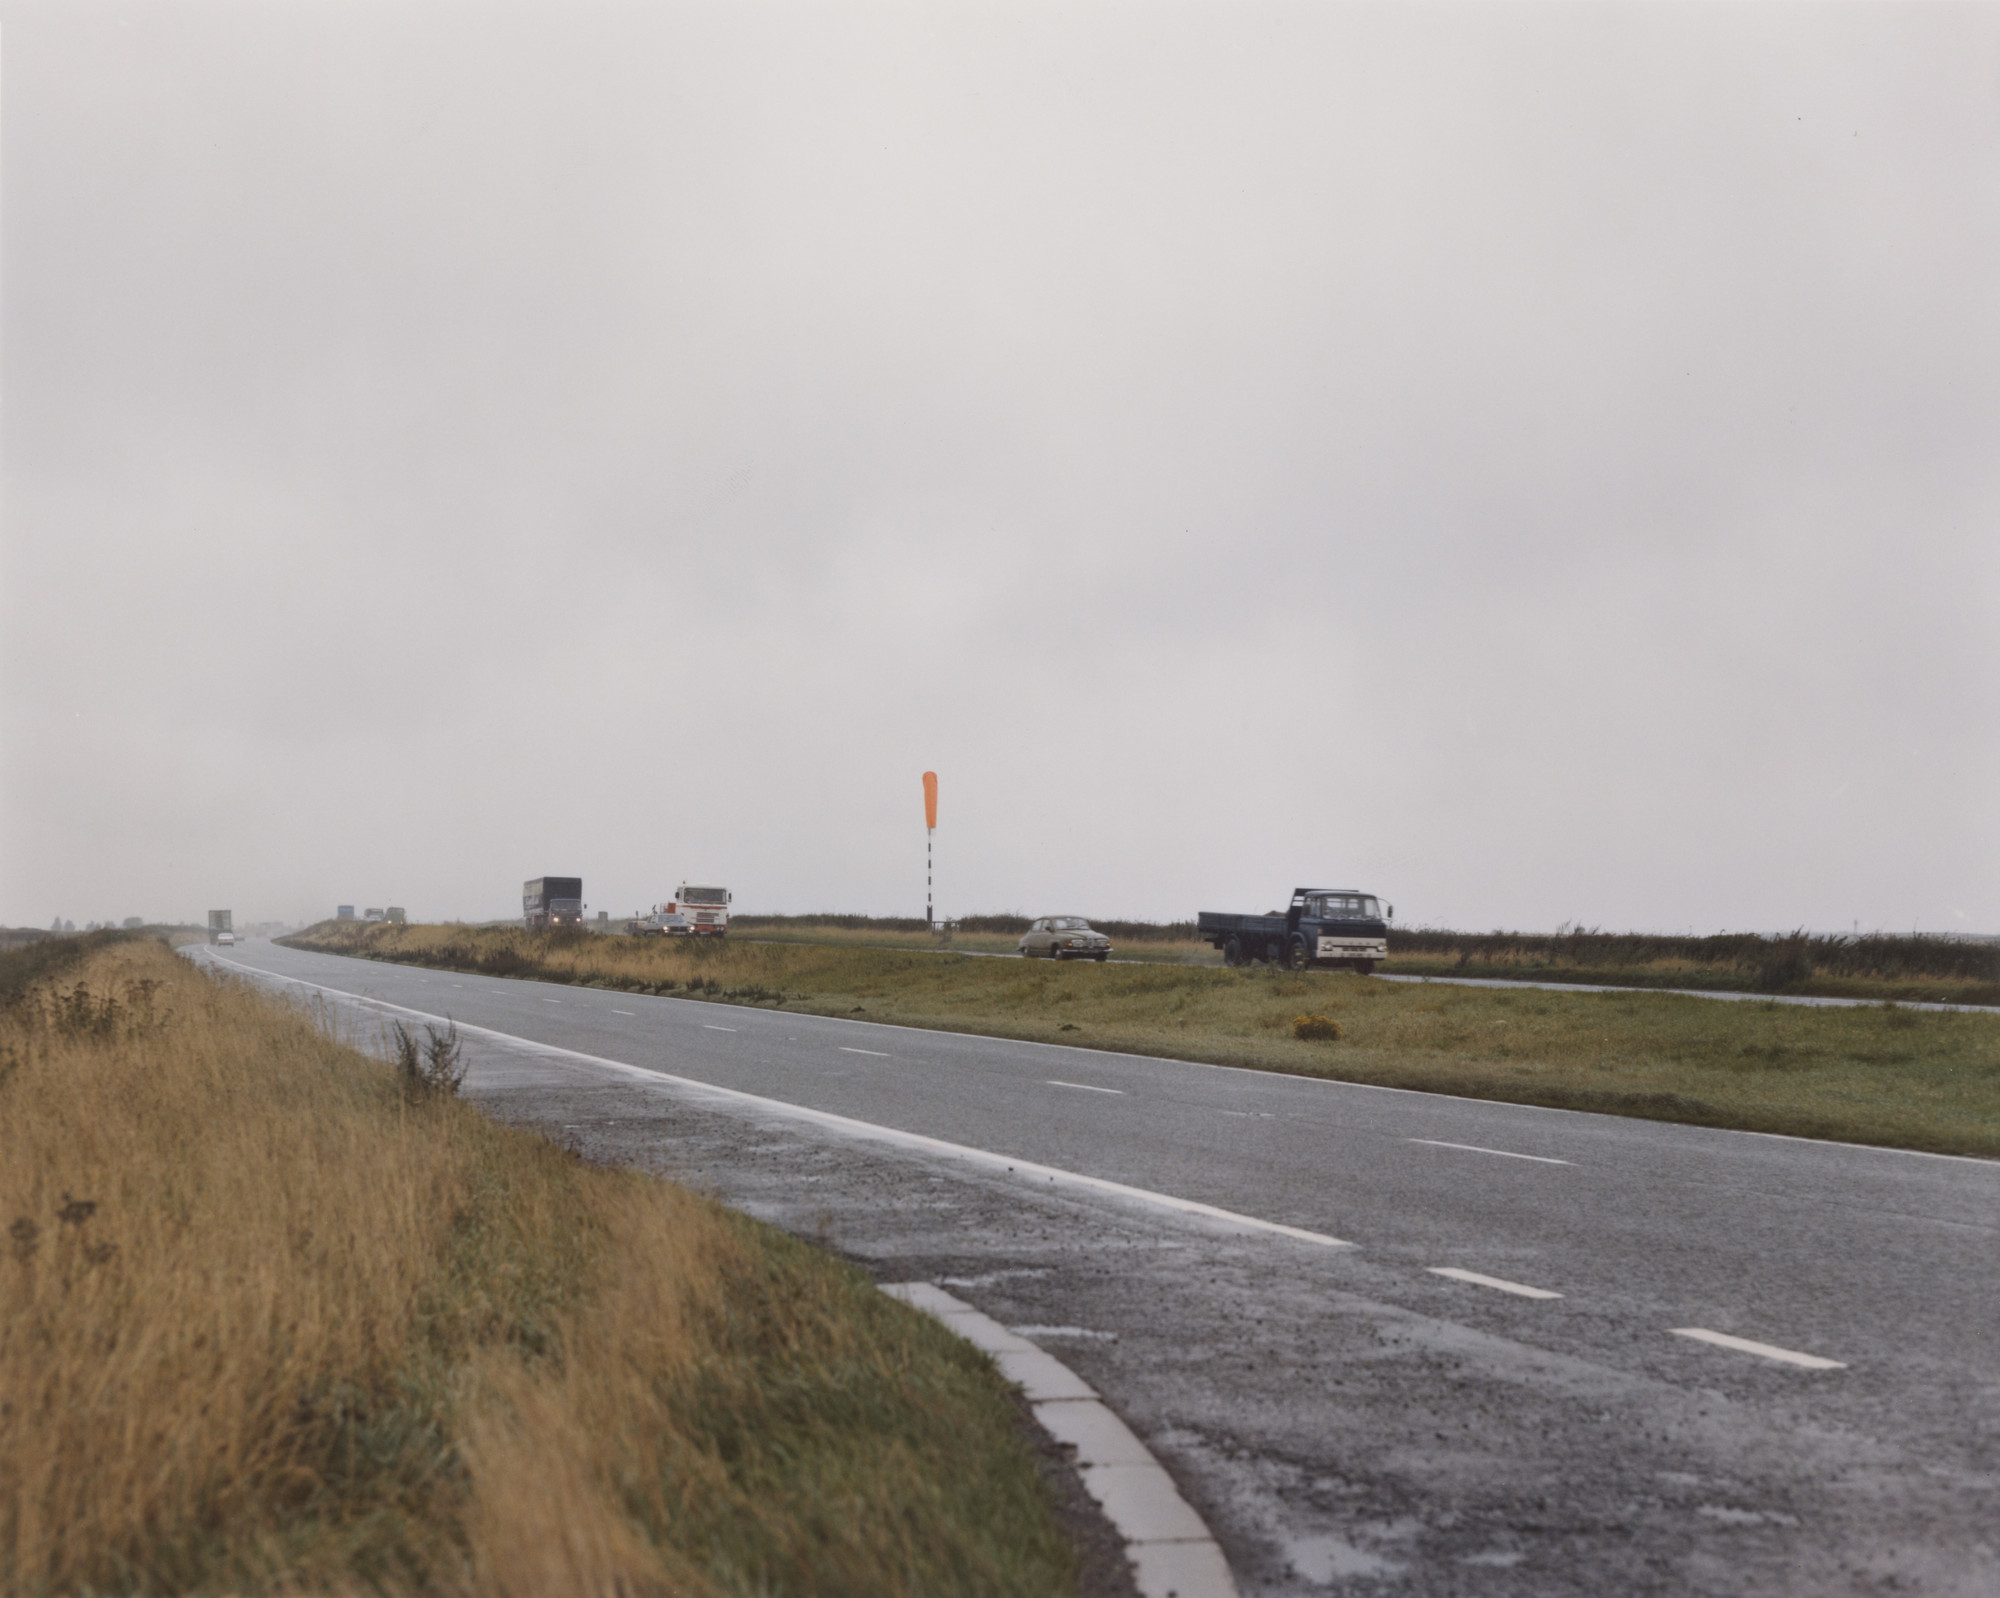 Paul Graham. Windsock in Rain, North Yorkshire from the portfolio A1: The Great North Road. November 1981